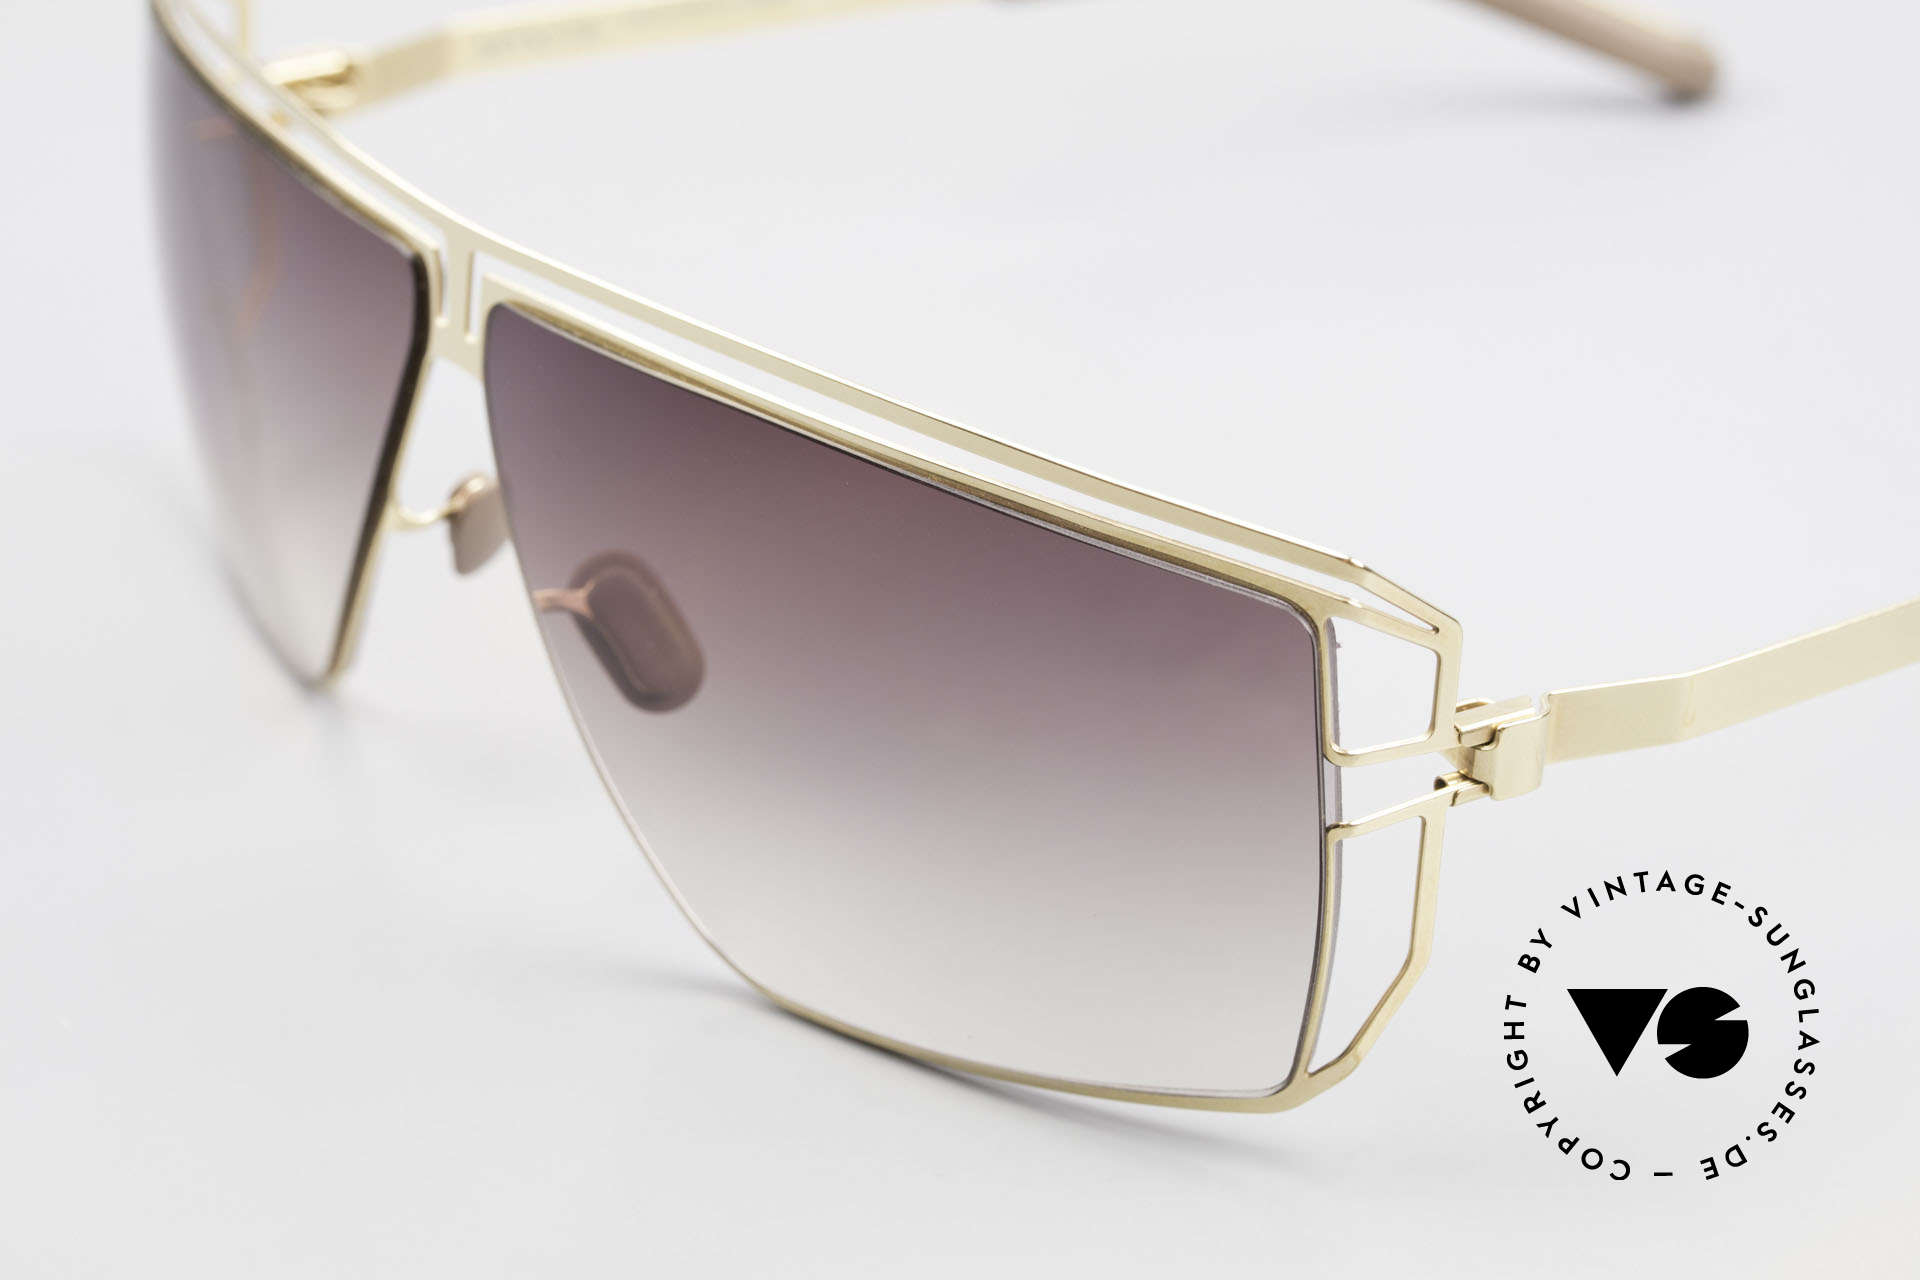 Mykita Anais Ladies Sunglasses From 2007, innovative and flexible metal frame = One size fits all!, Made for Women